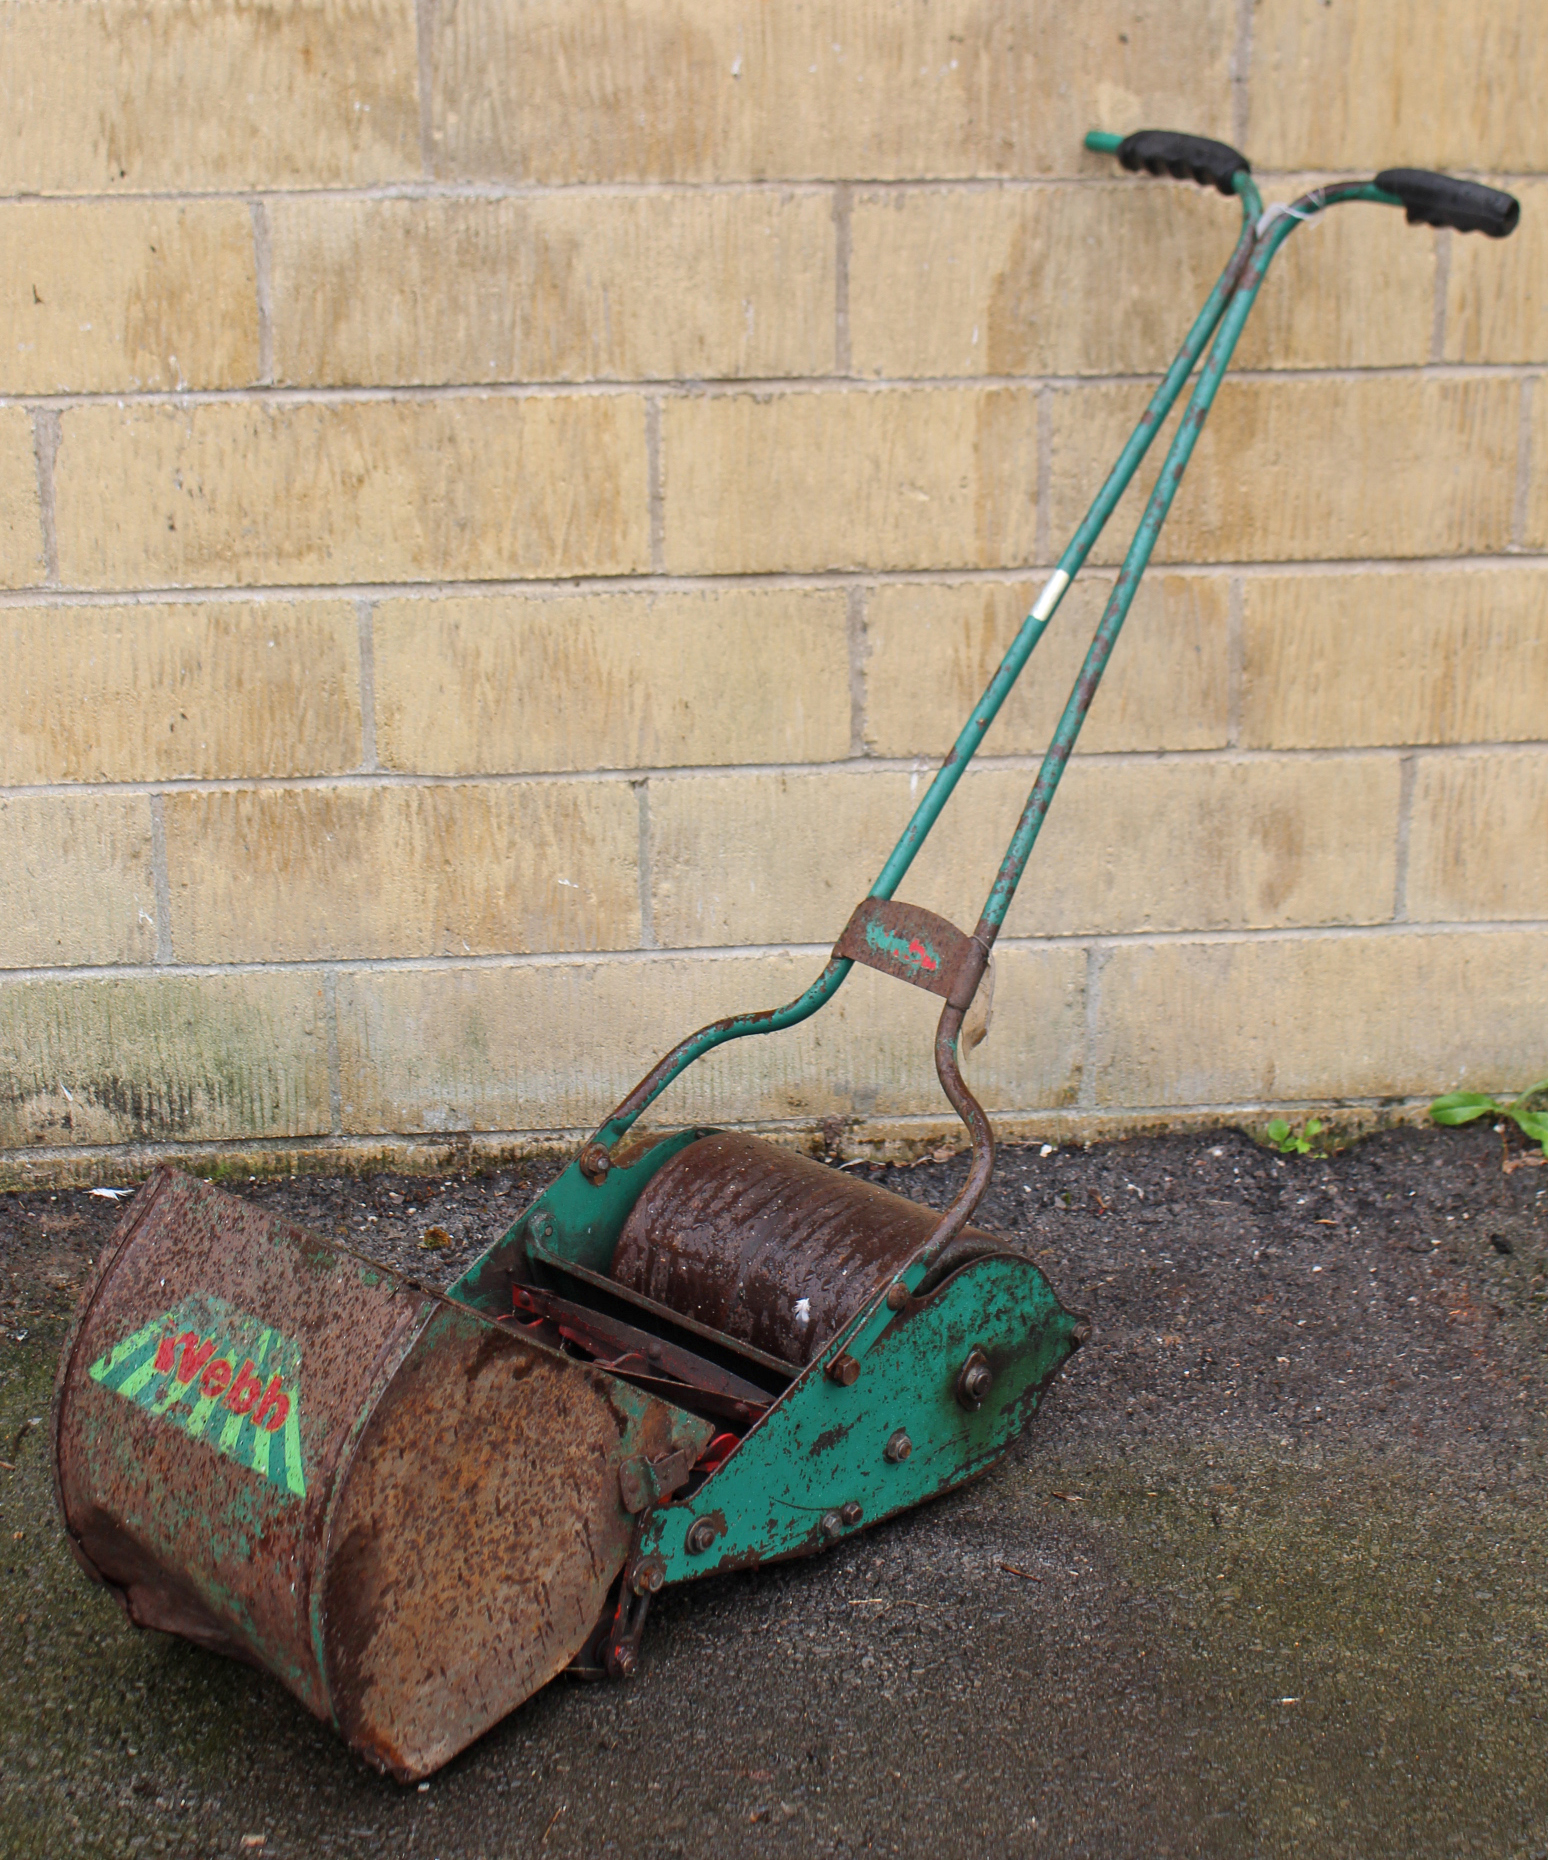 Lot 2 - A 'WEBB' child's toy push-along mower, with grass box, worn paintwork.